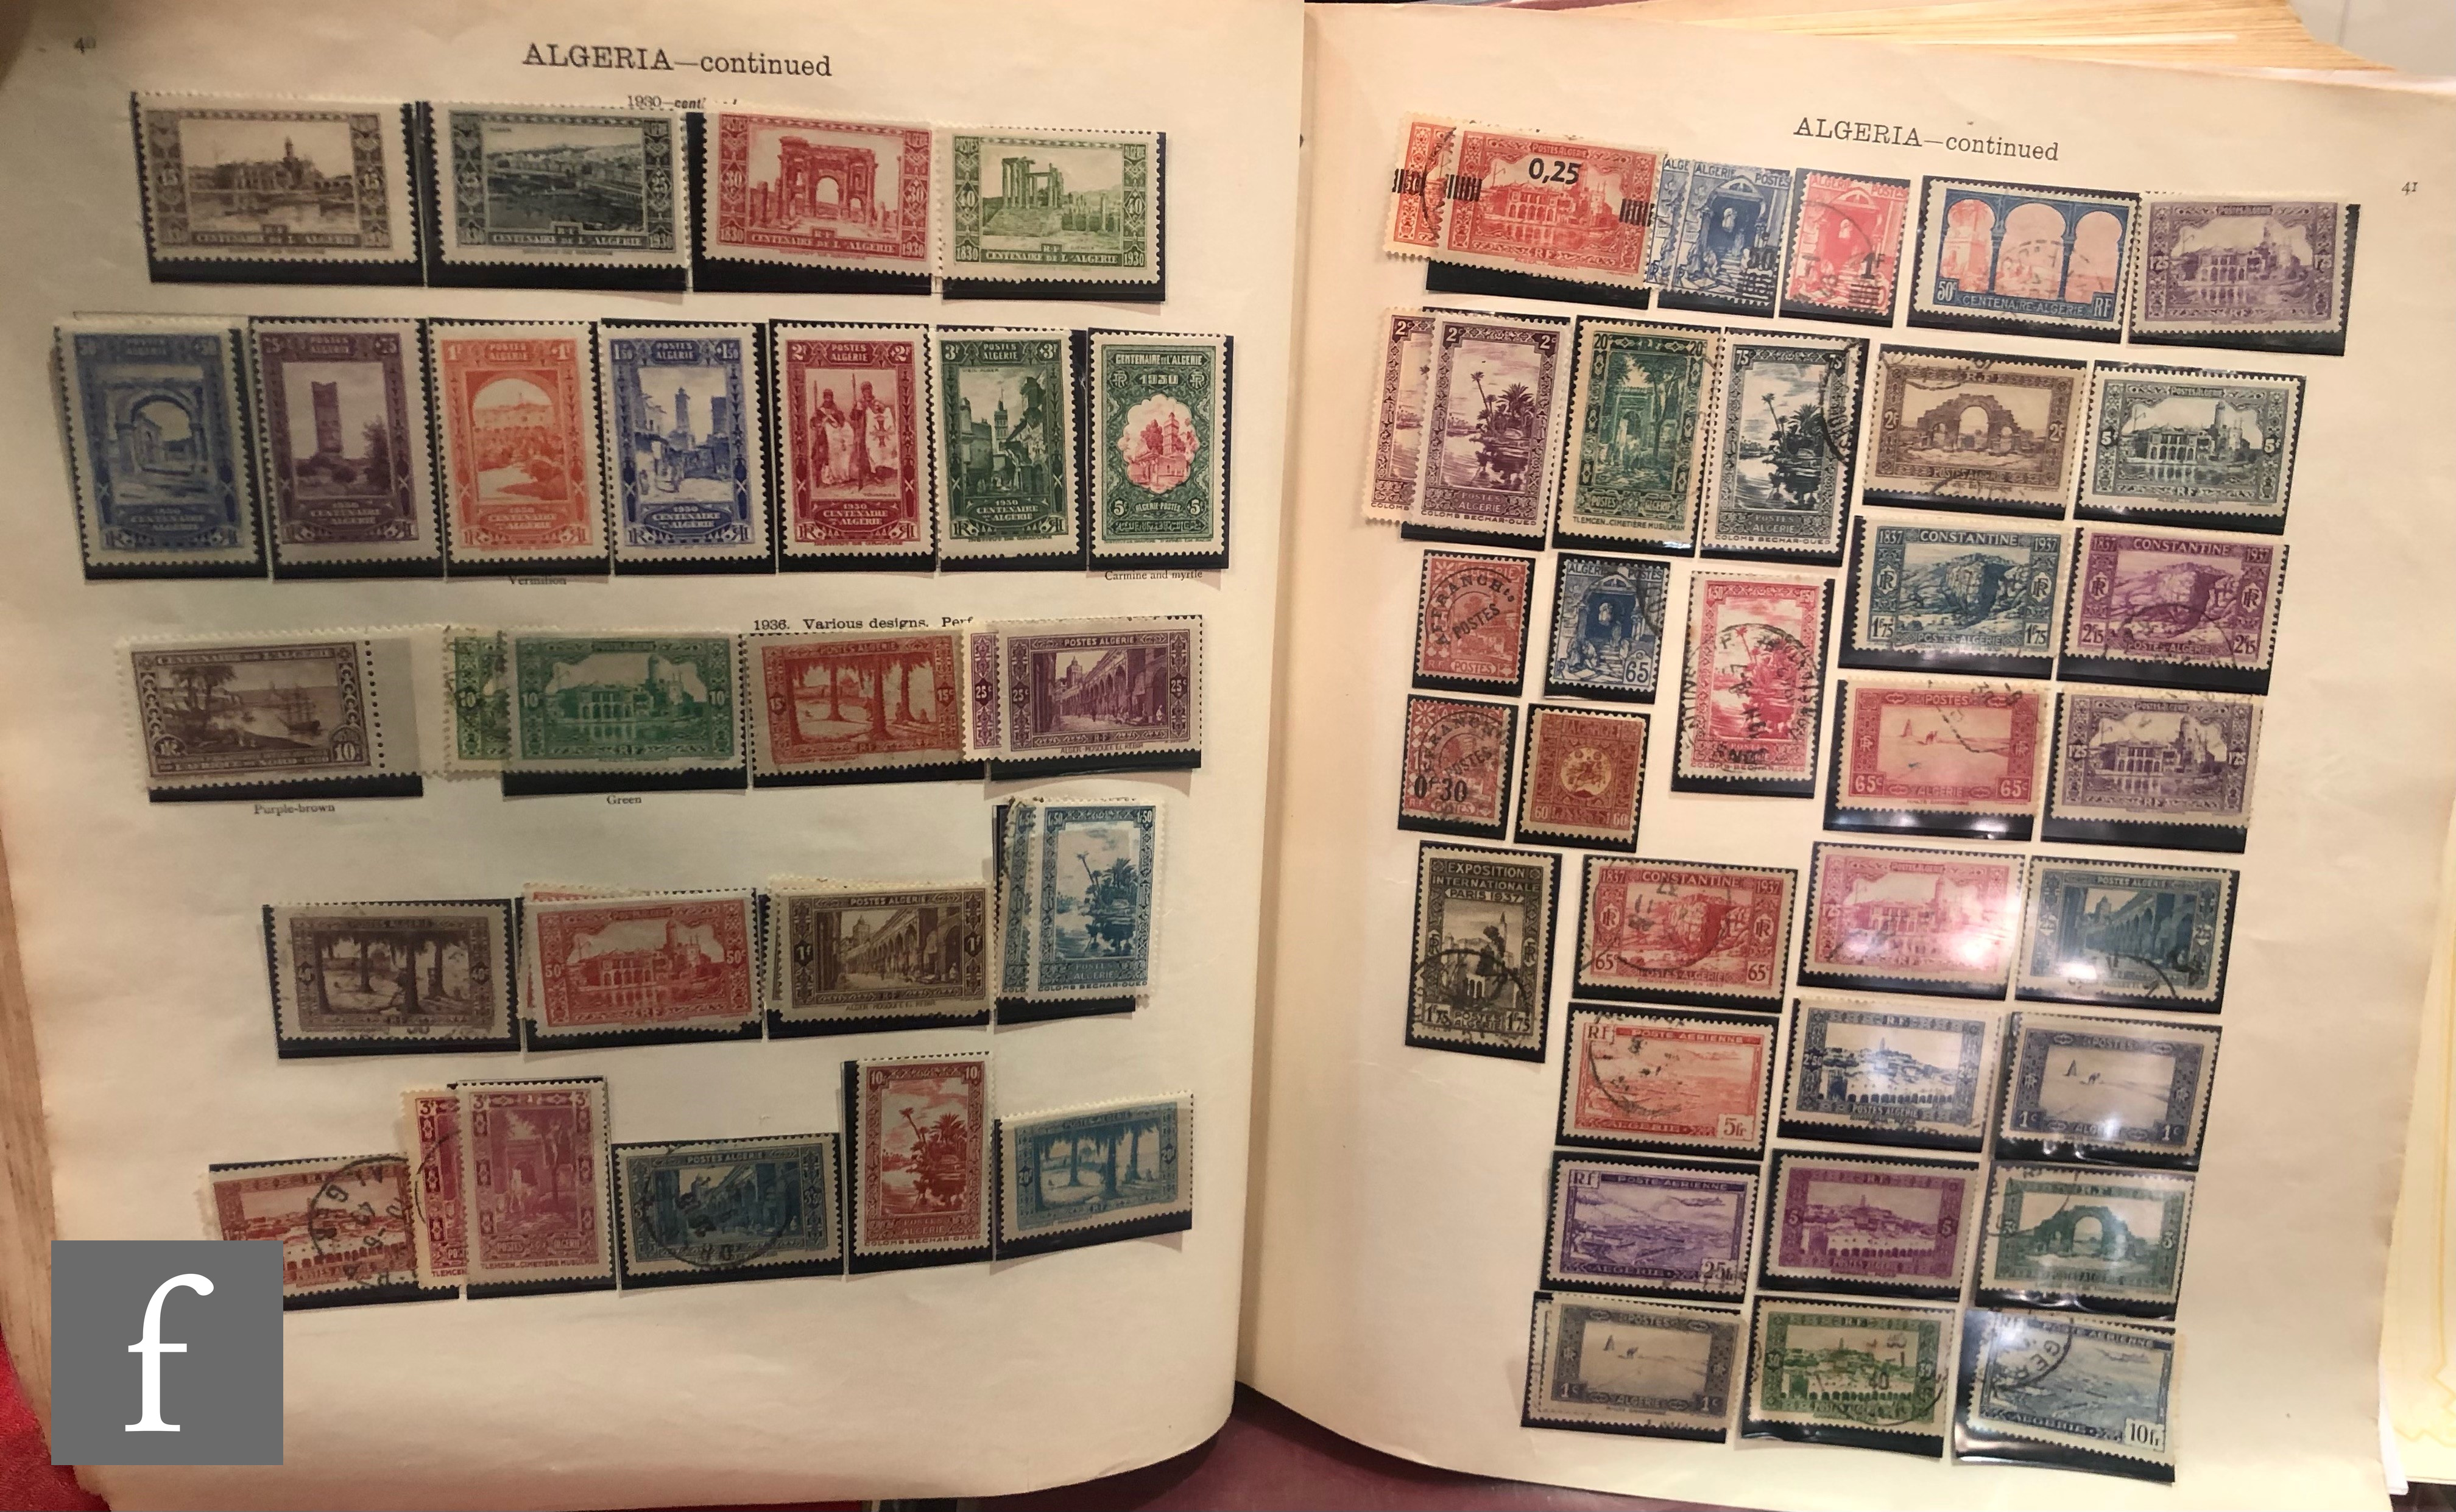 Three stamp albums, 'The Ideal Postage Stamp Album' together with 'The New Ideal Album for the